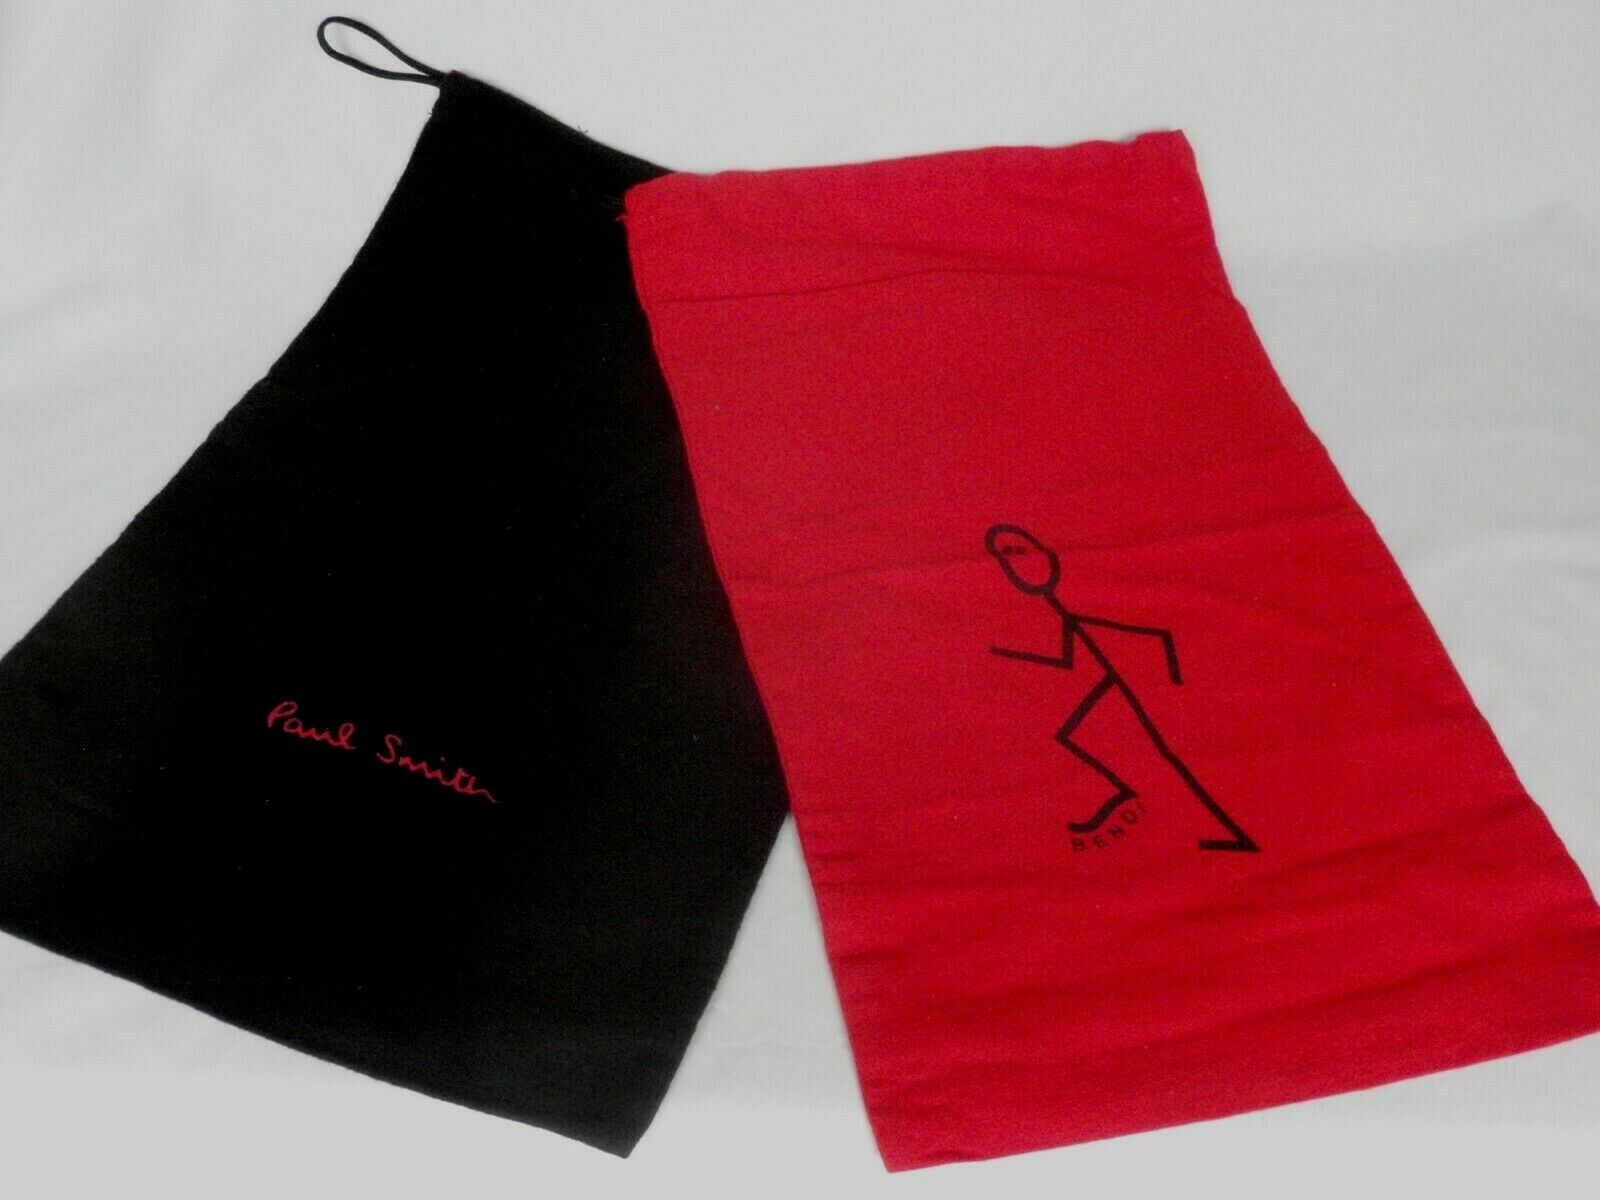 Paul Smith Large Black & Red Cotton Bendi Dustbag Sleeper Shoe Bags 1 Pair